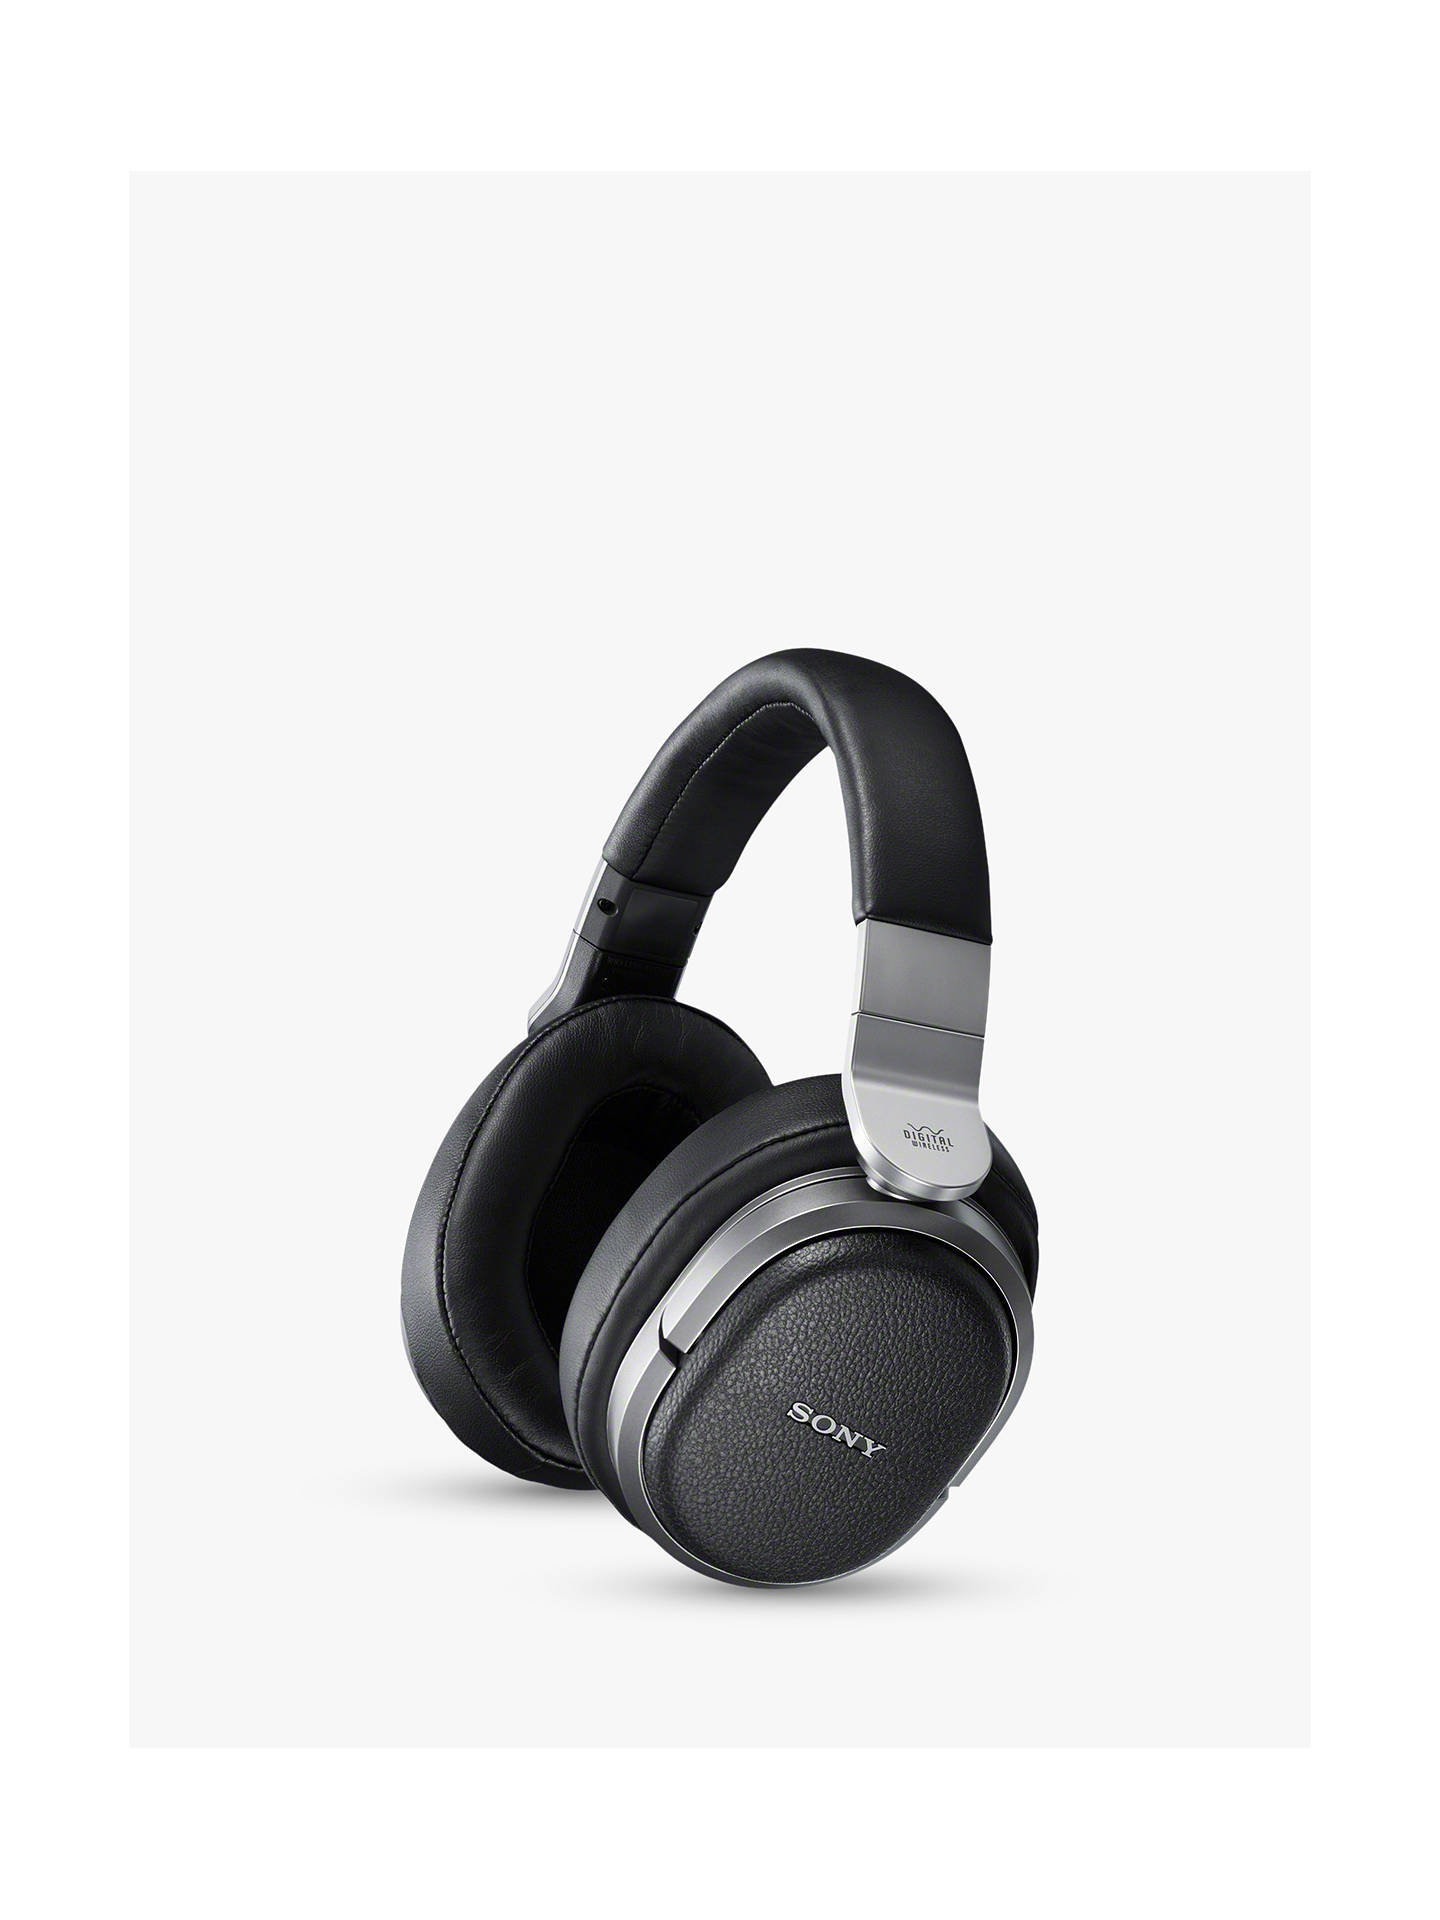 BuySony MDRHW700DS Digital Surround RF 9.1 Channel Wireless Over-Ear Headphones, Silver Online at johnlewis.com